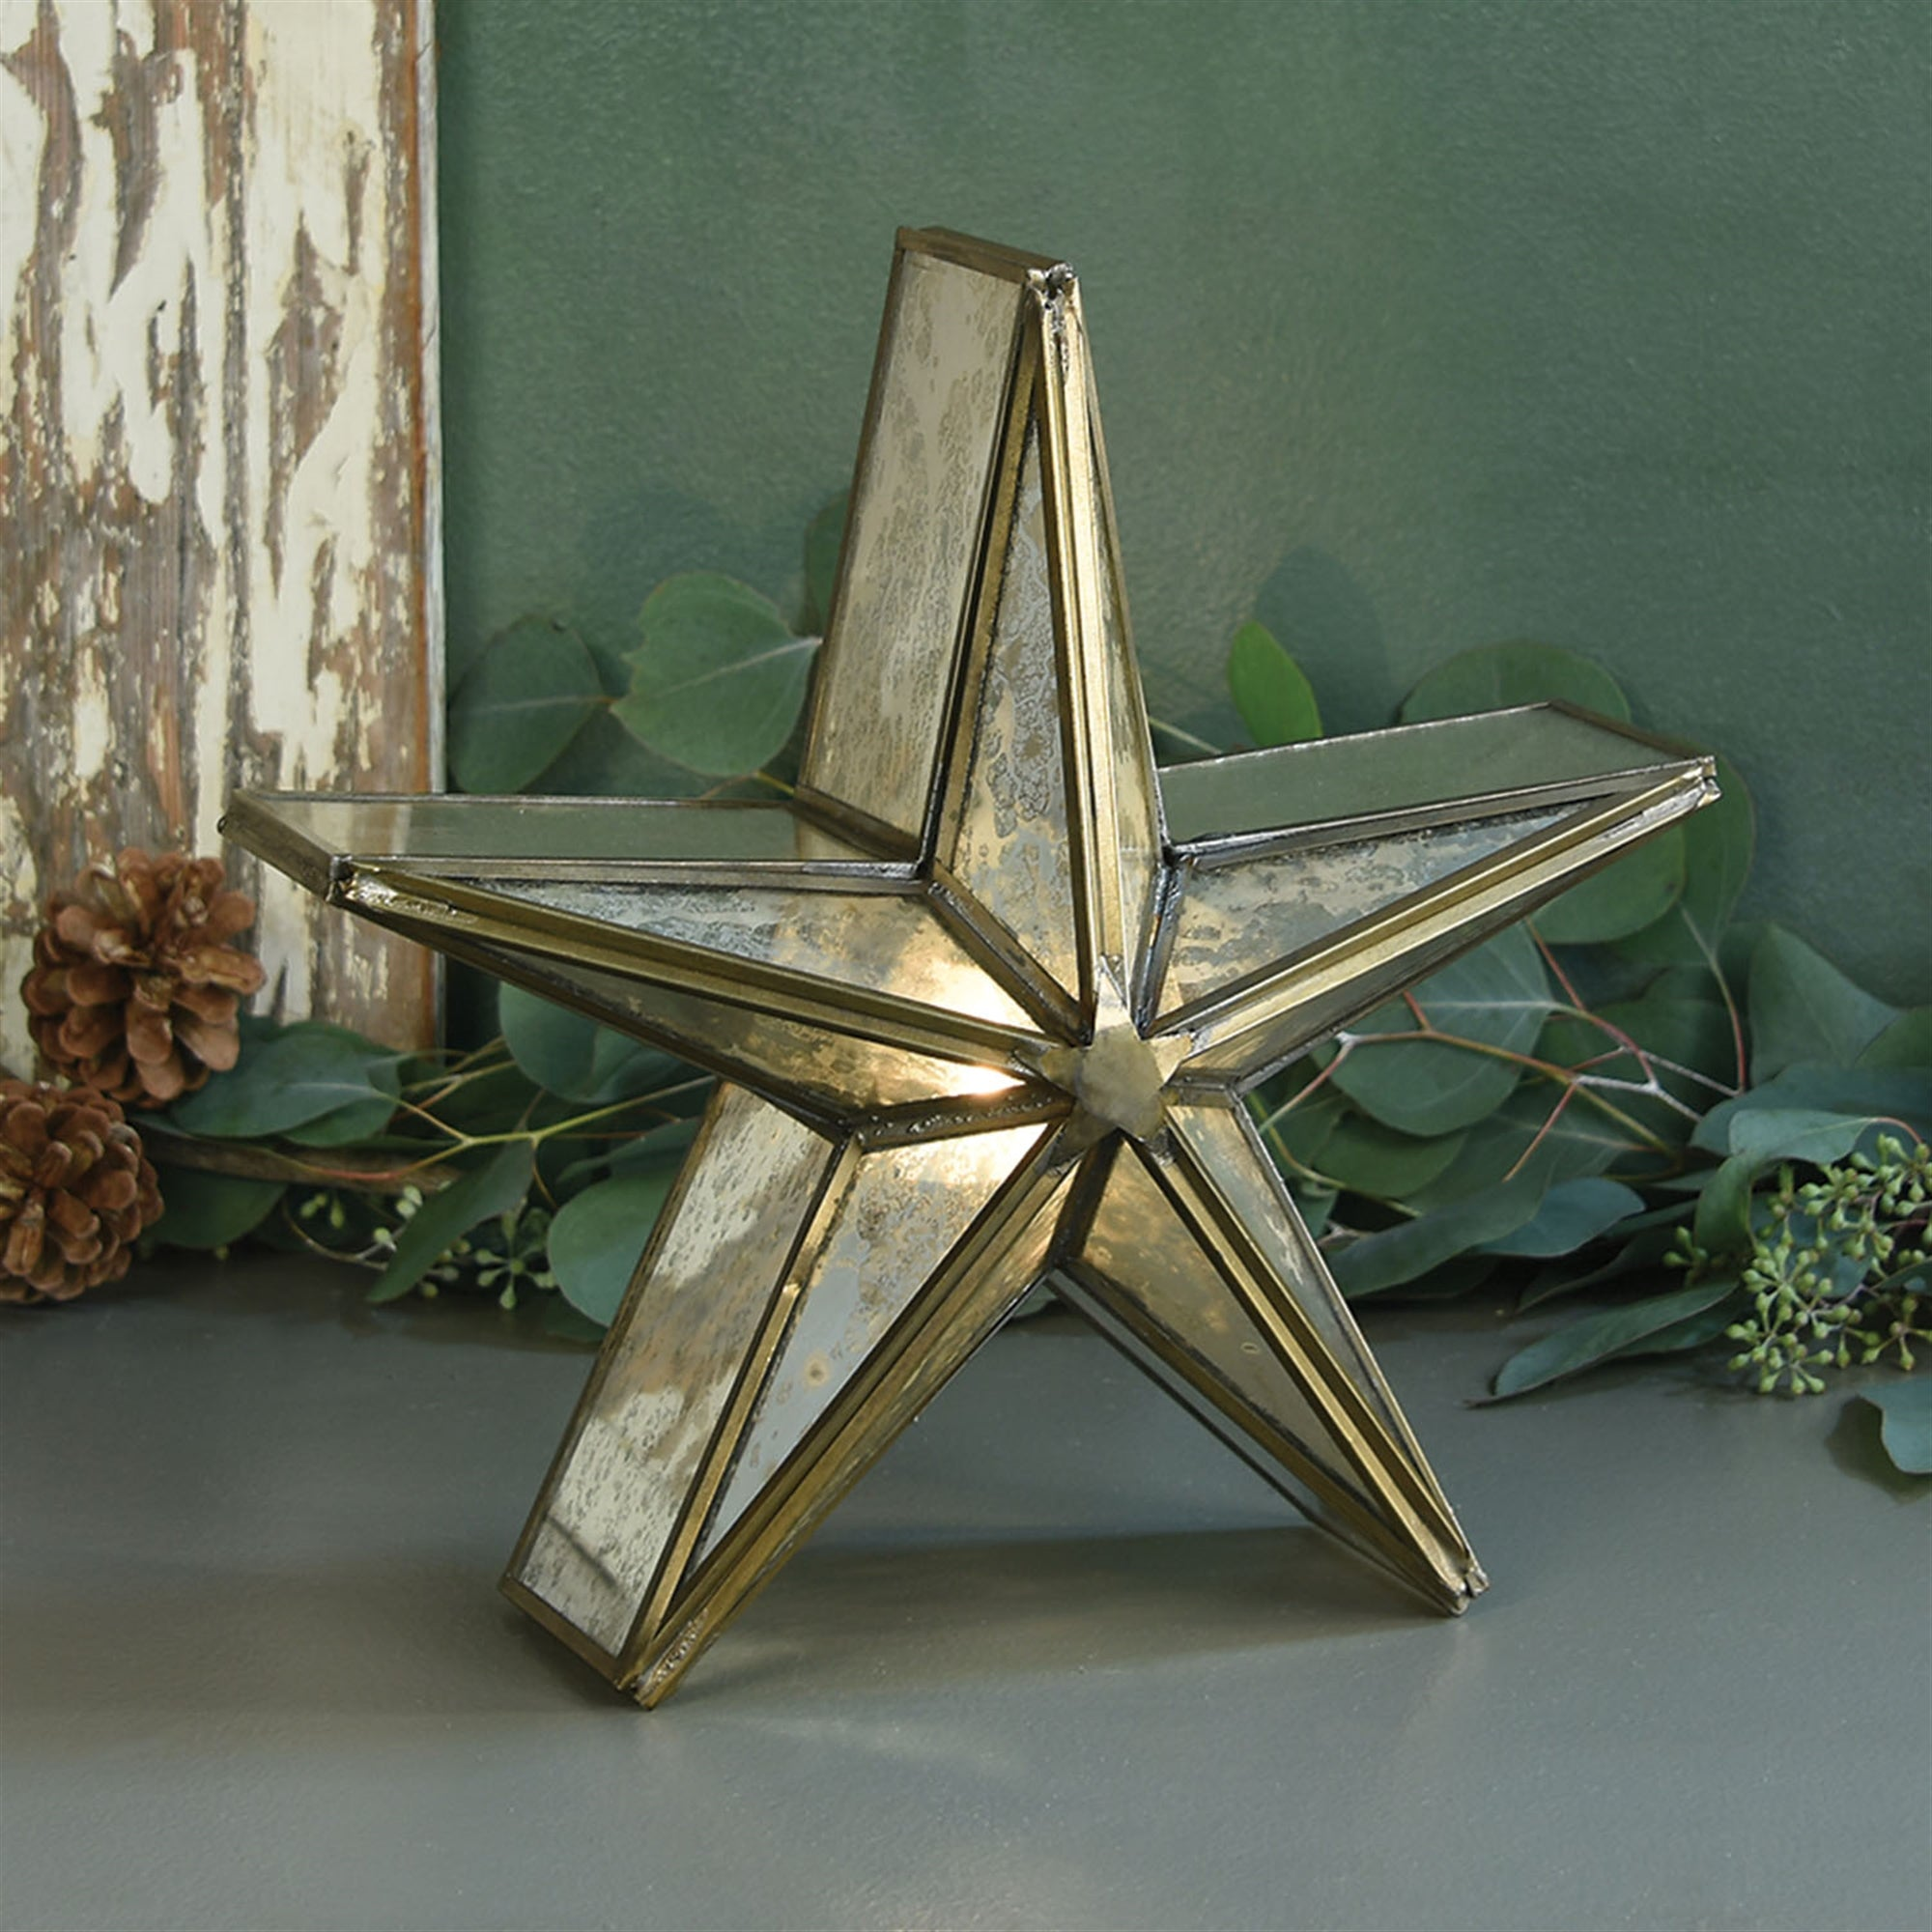 Glass Star Candle Holder - 2 styles - CARLYLE AVENUE